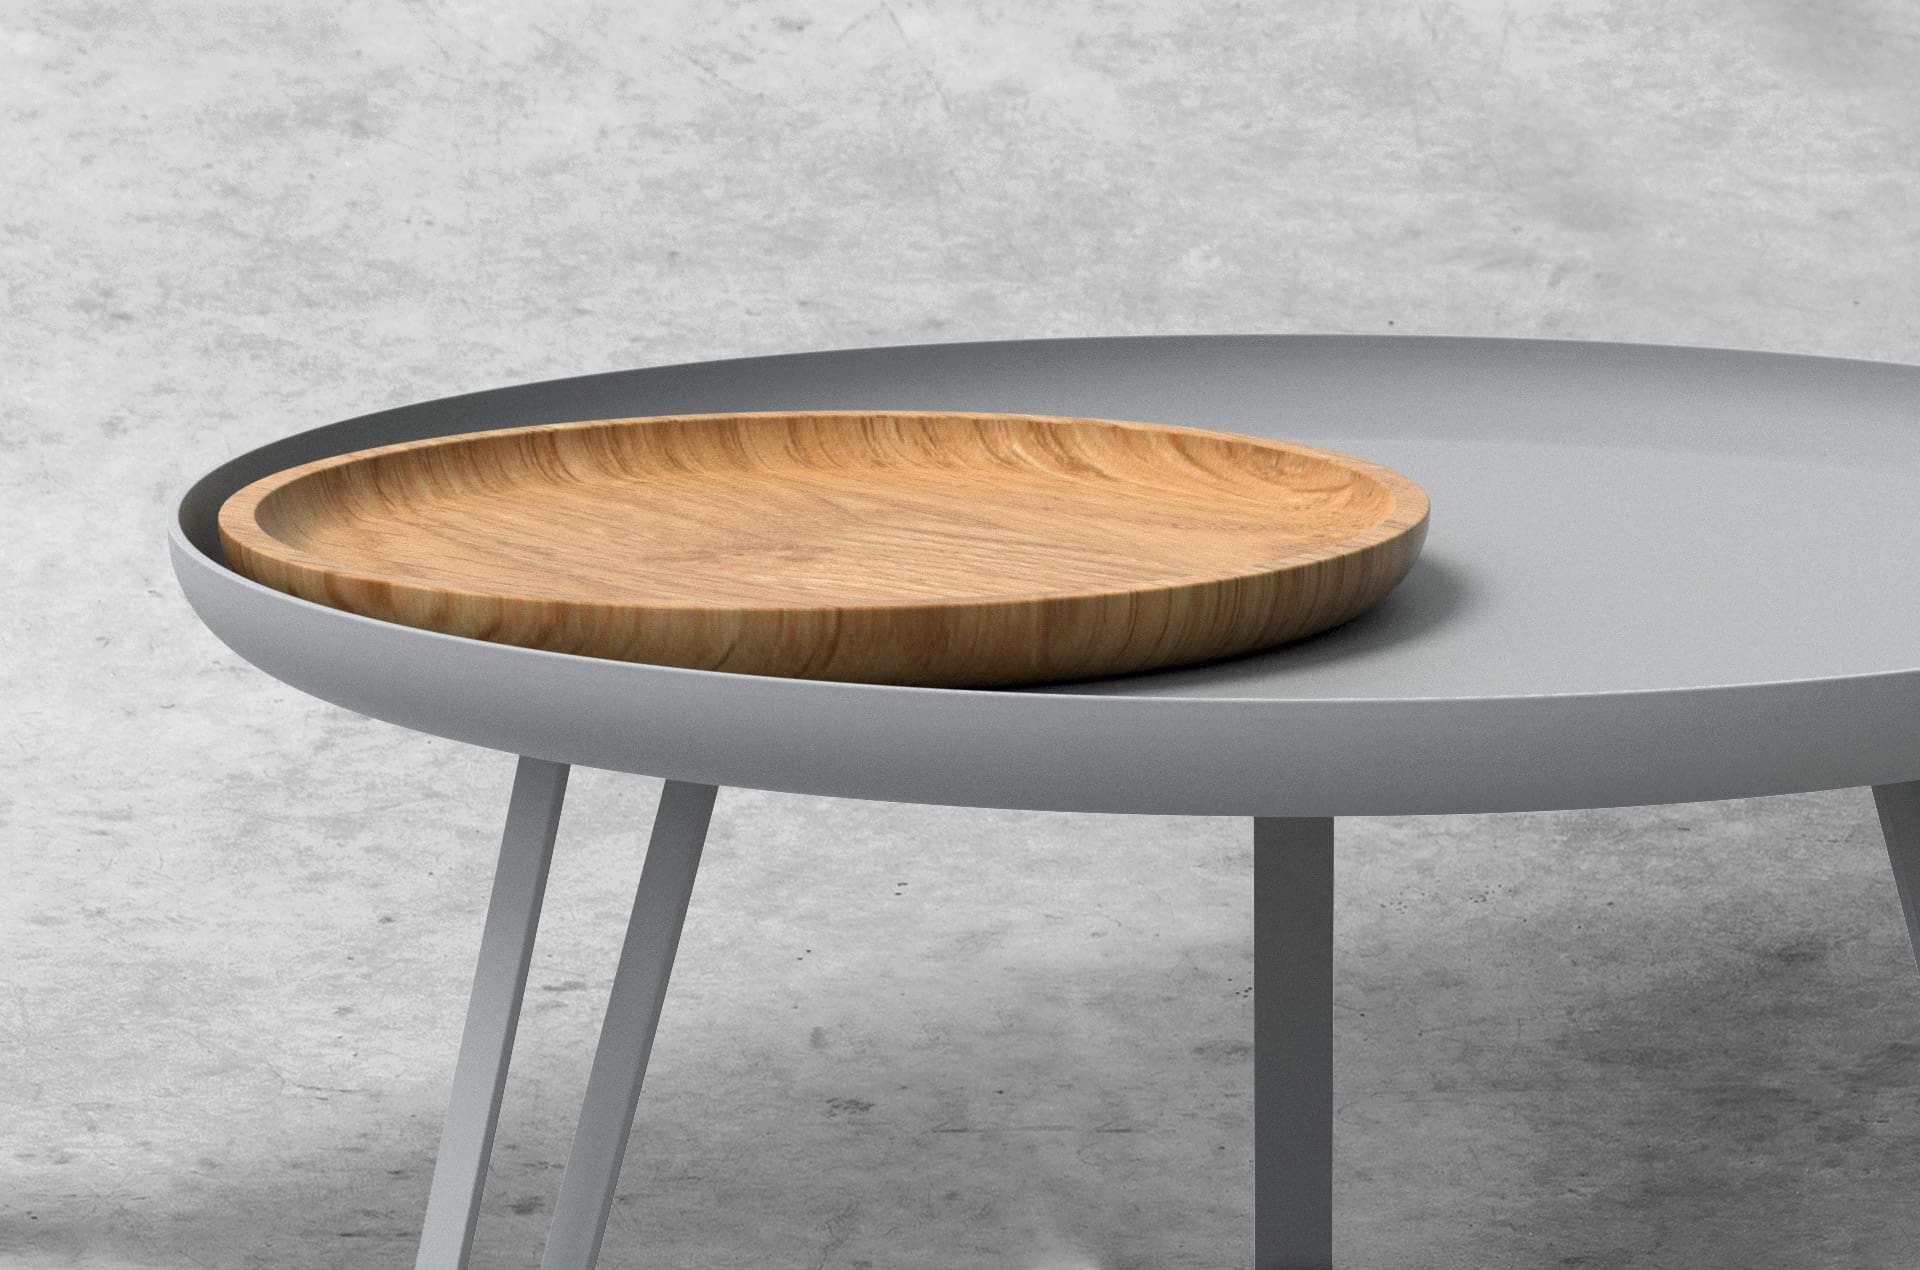 Table basse acier gris 74cm, Carosello by Slawinski-PARIDEO design durable